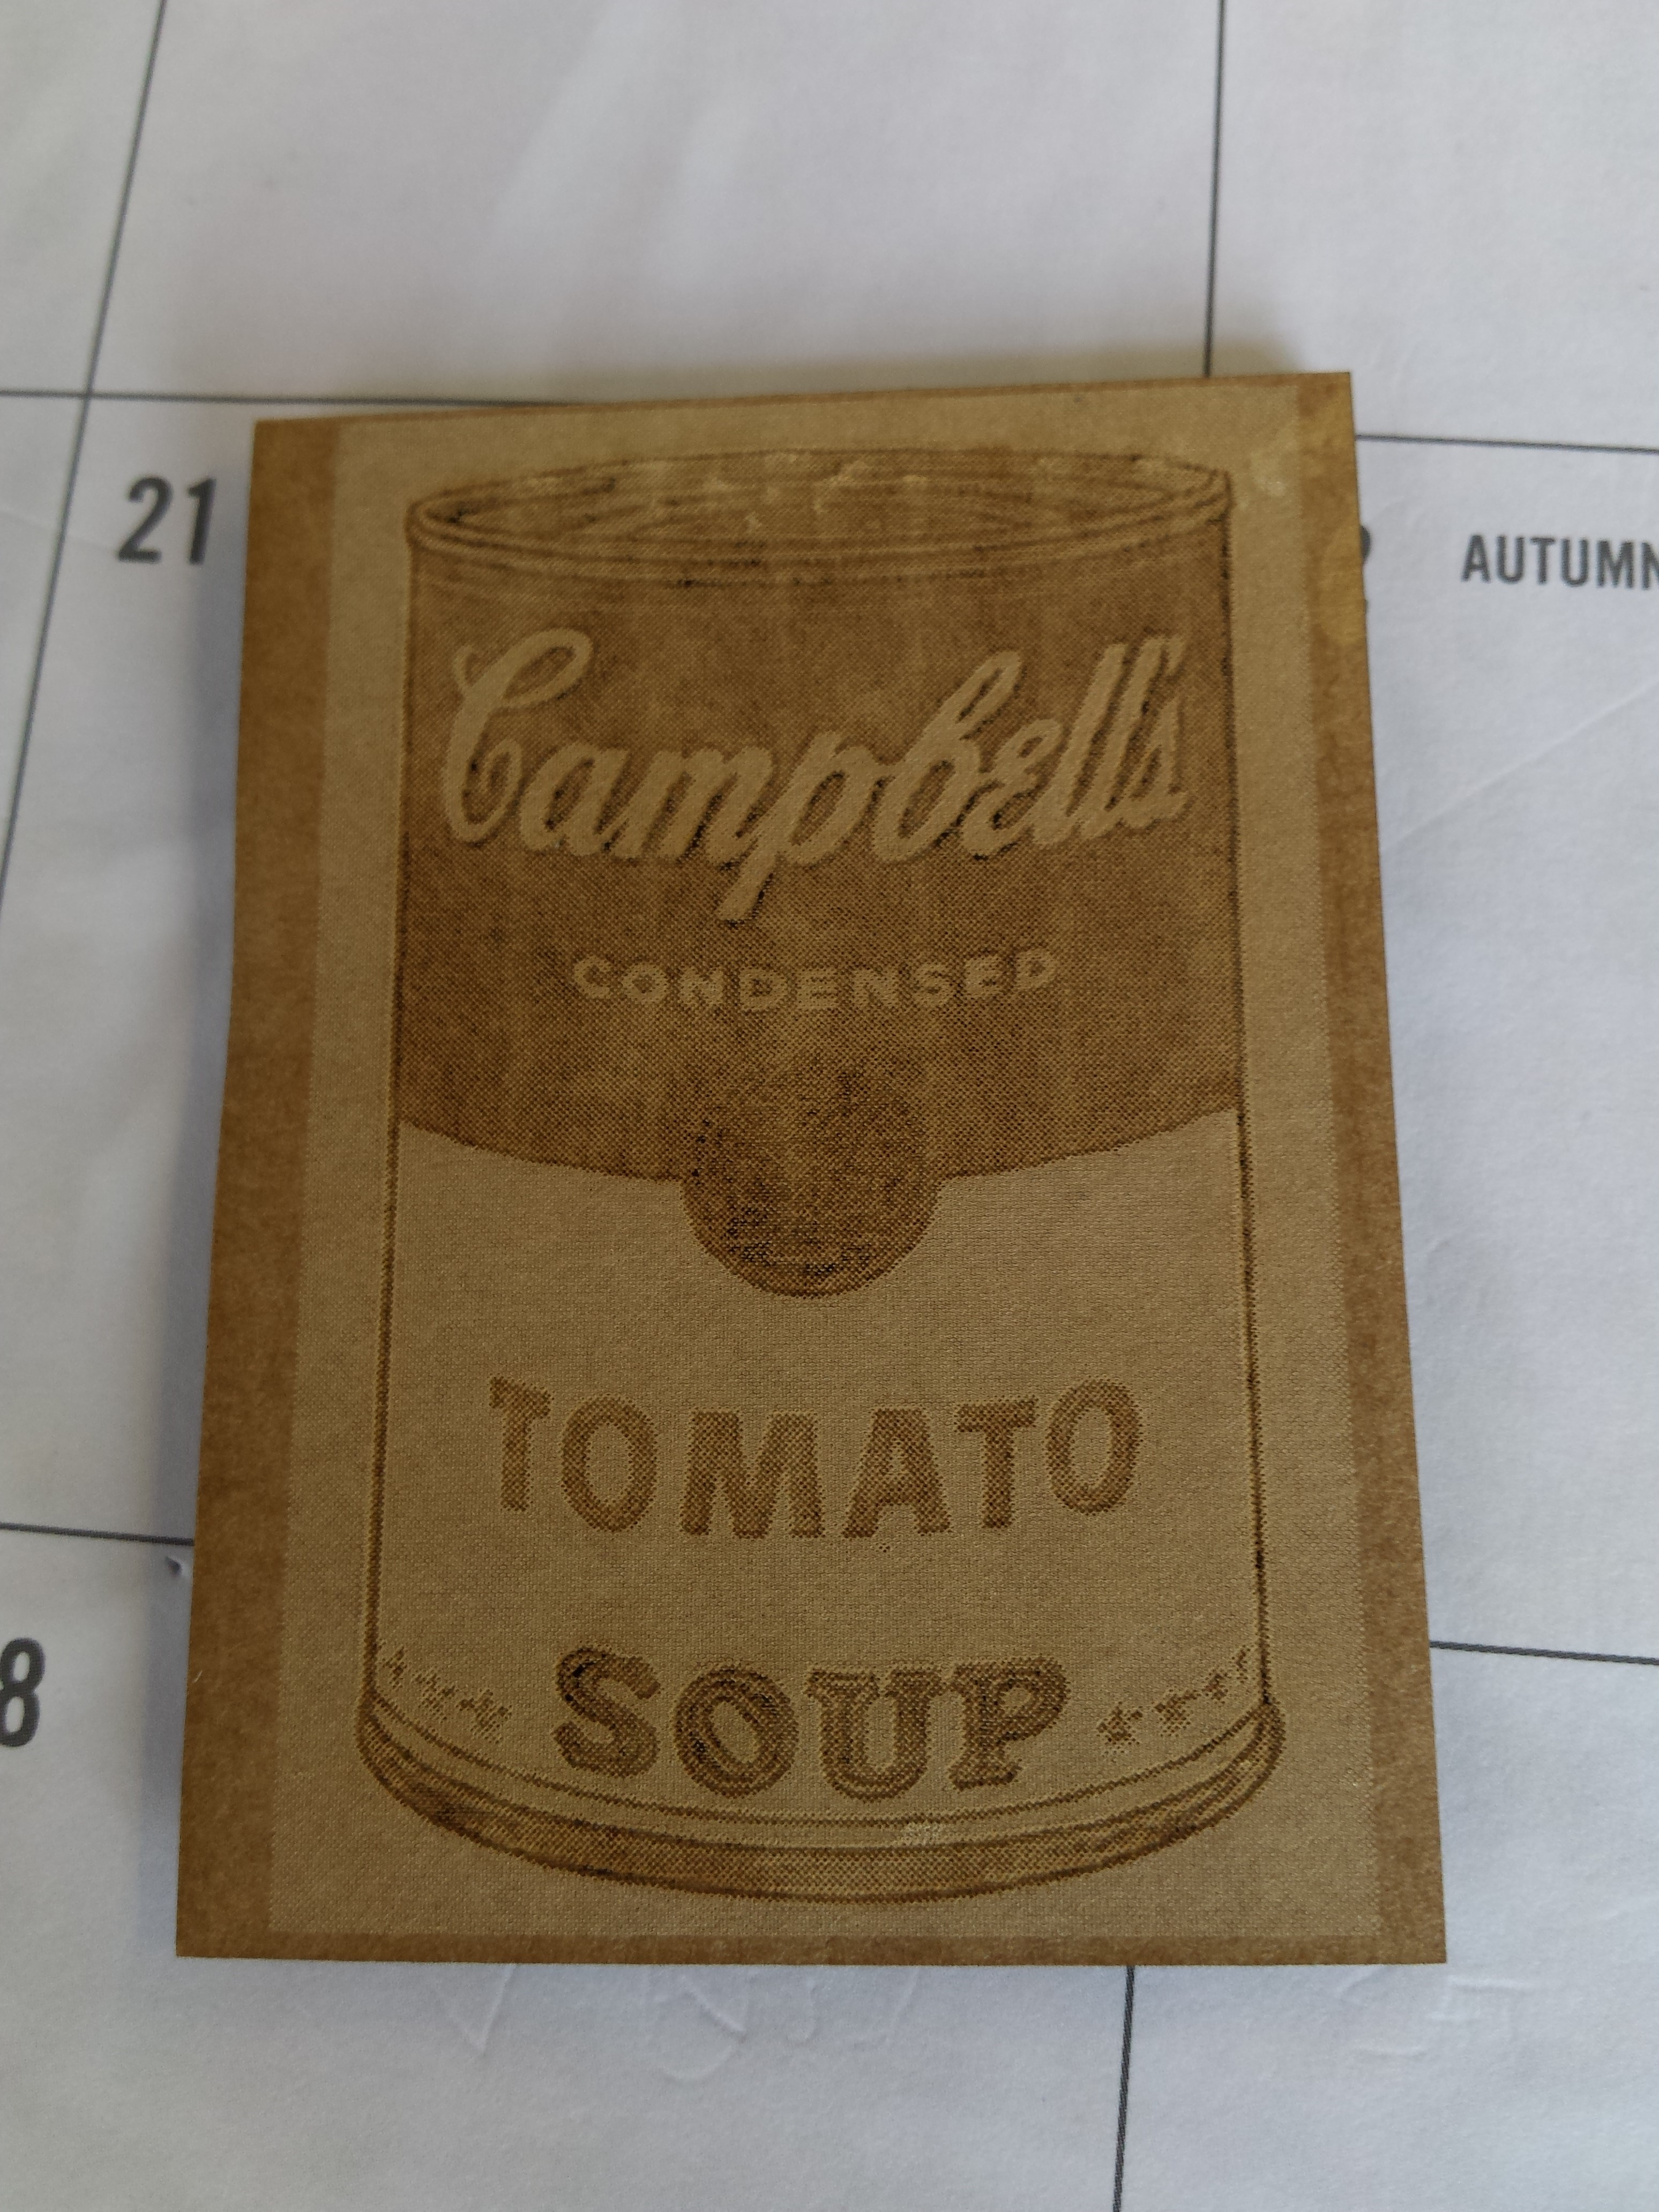 Campbell's by Warhol